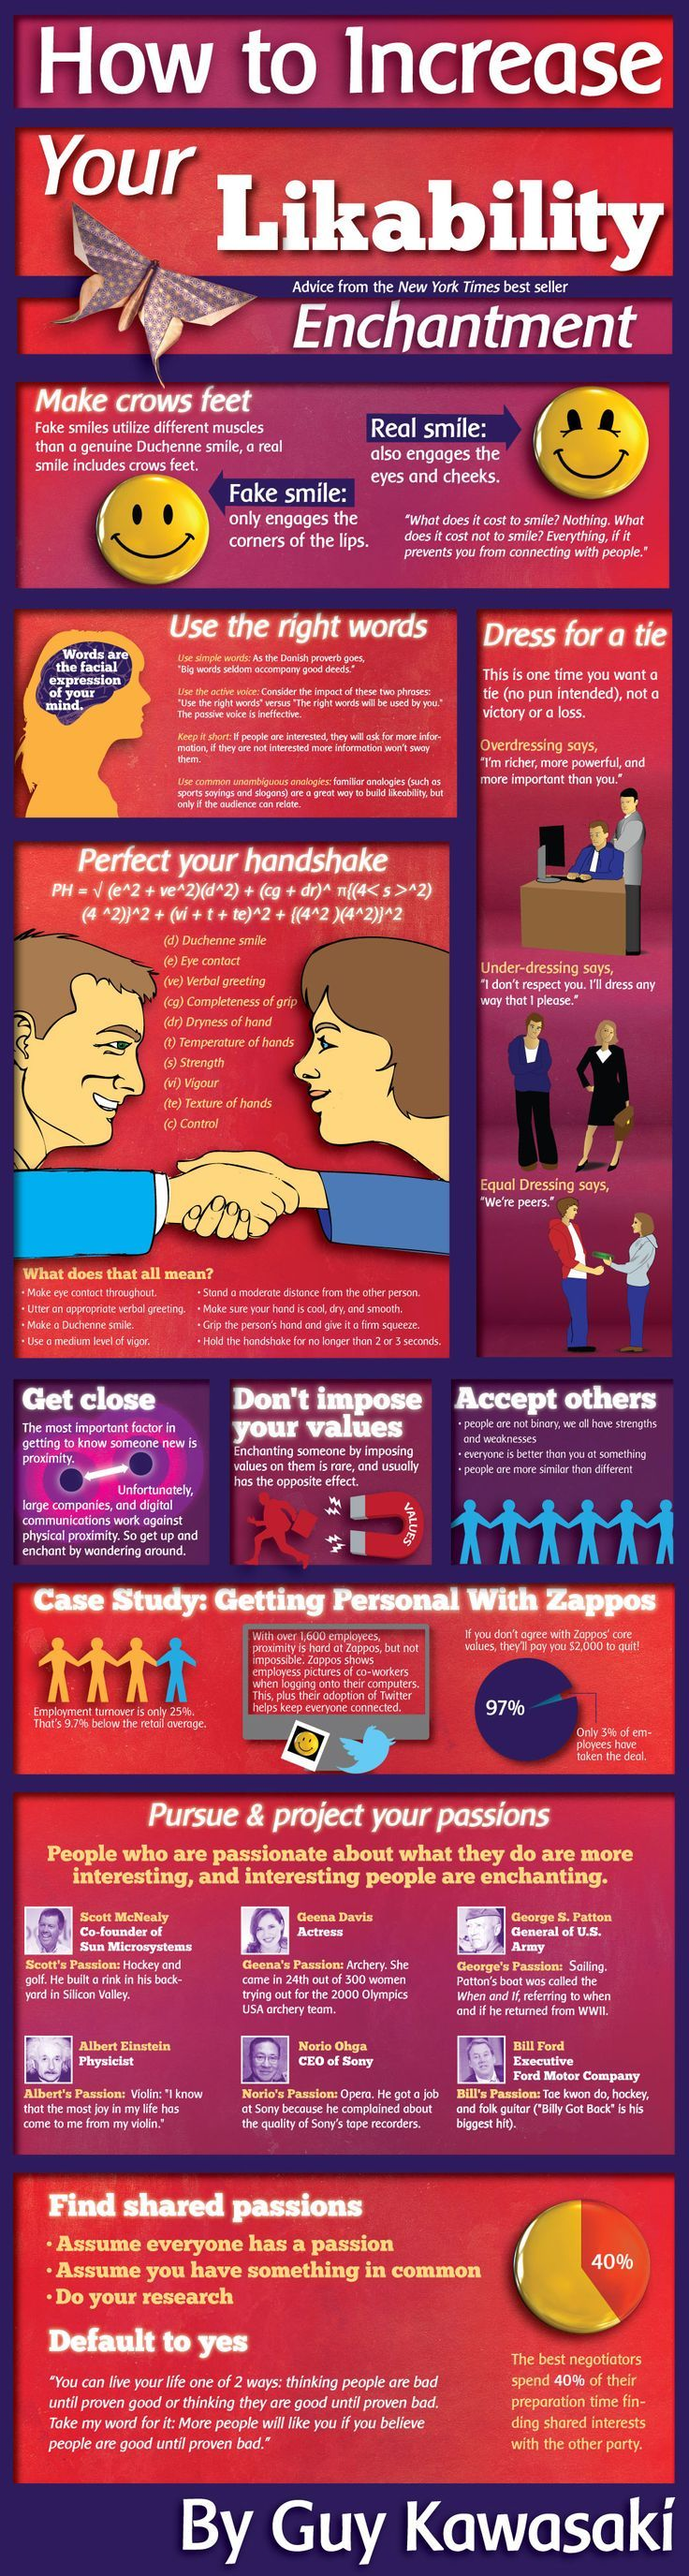 """Guy Kawasaki """"How to Increase your likeability"""" Enchantment Infographic"""